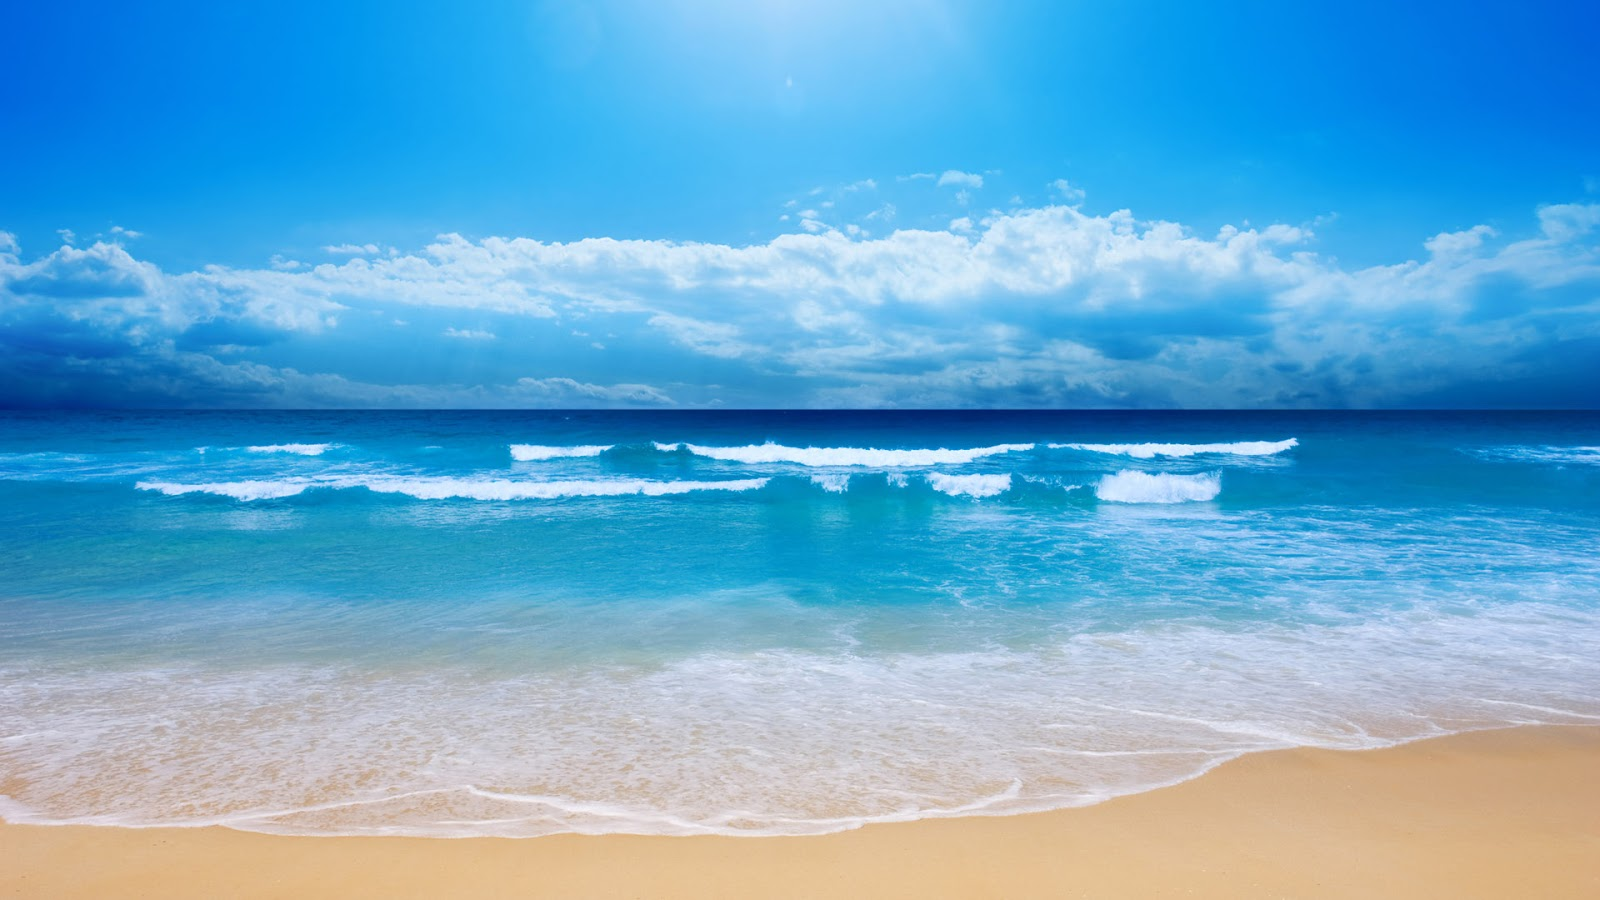 Beach Sea Sand Wallpaper Android